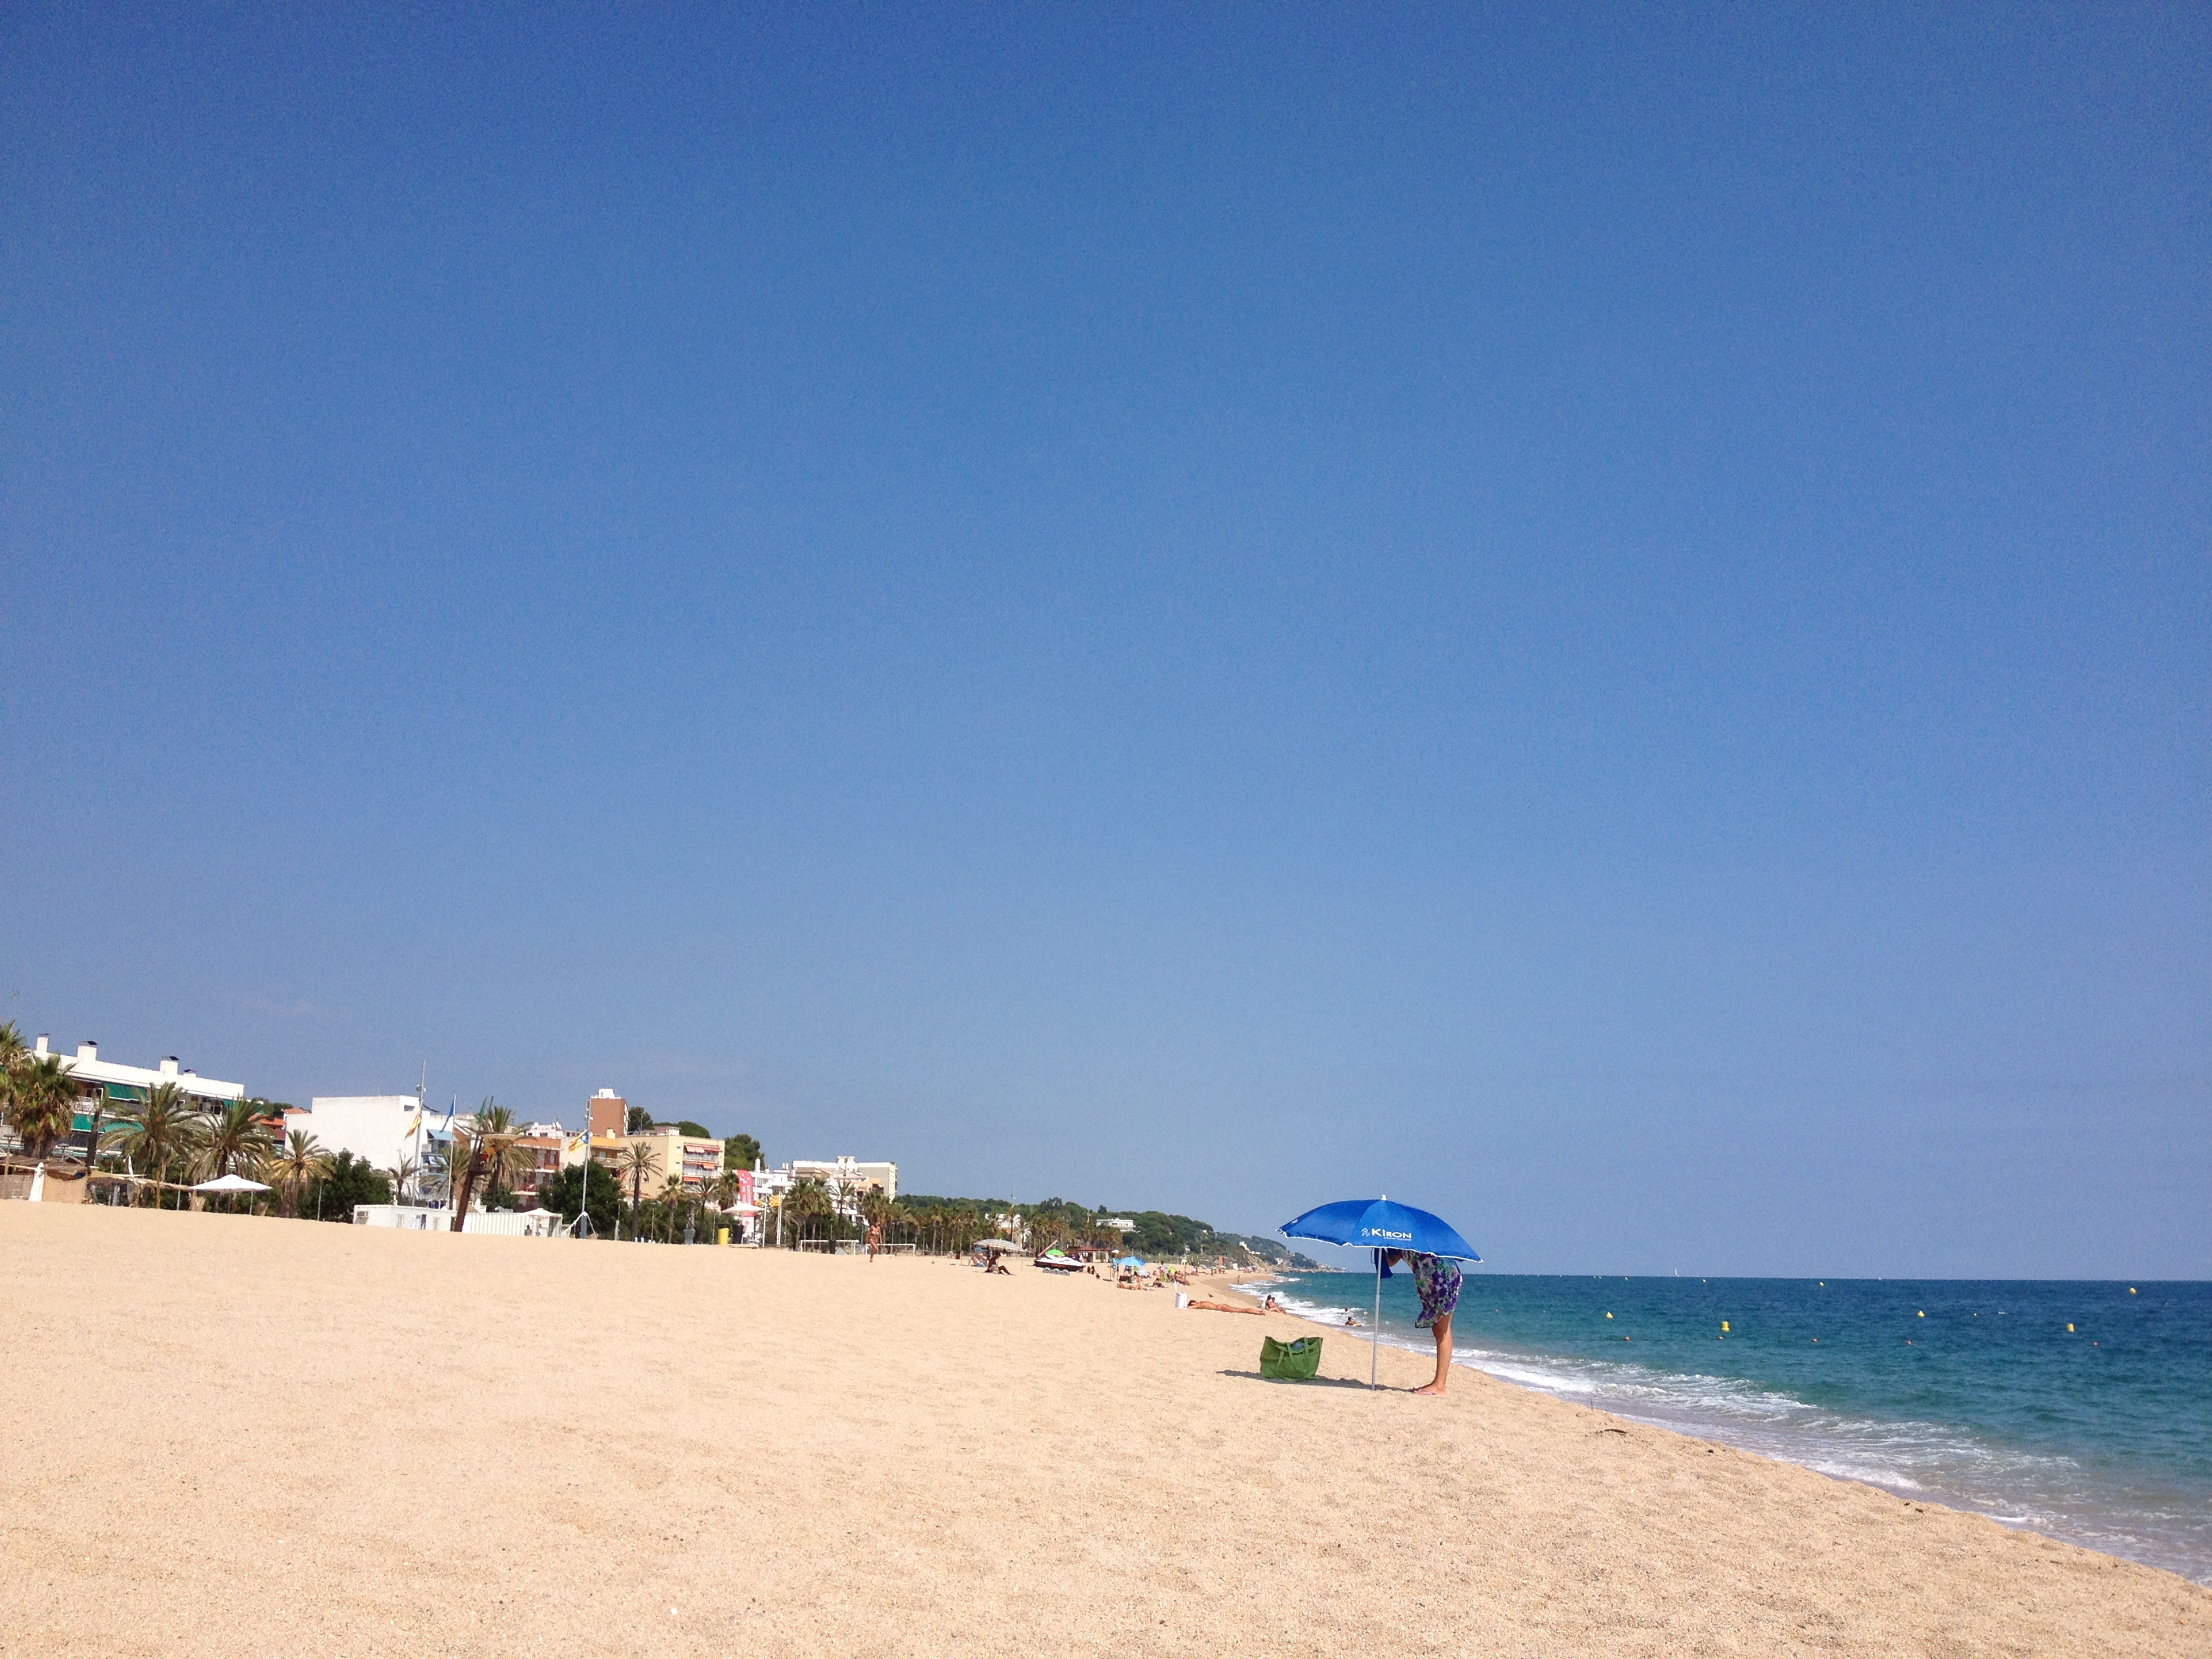 Canet de Mar: breed en mooi strand